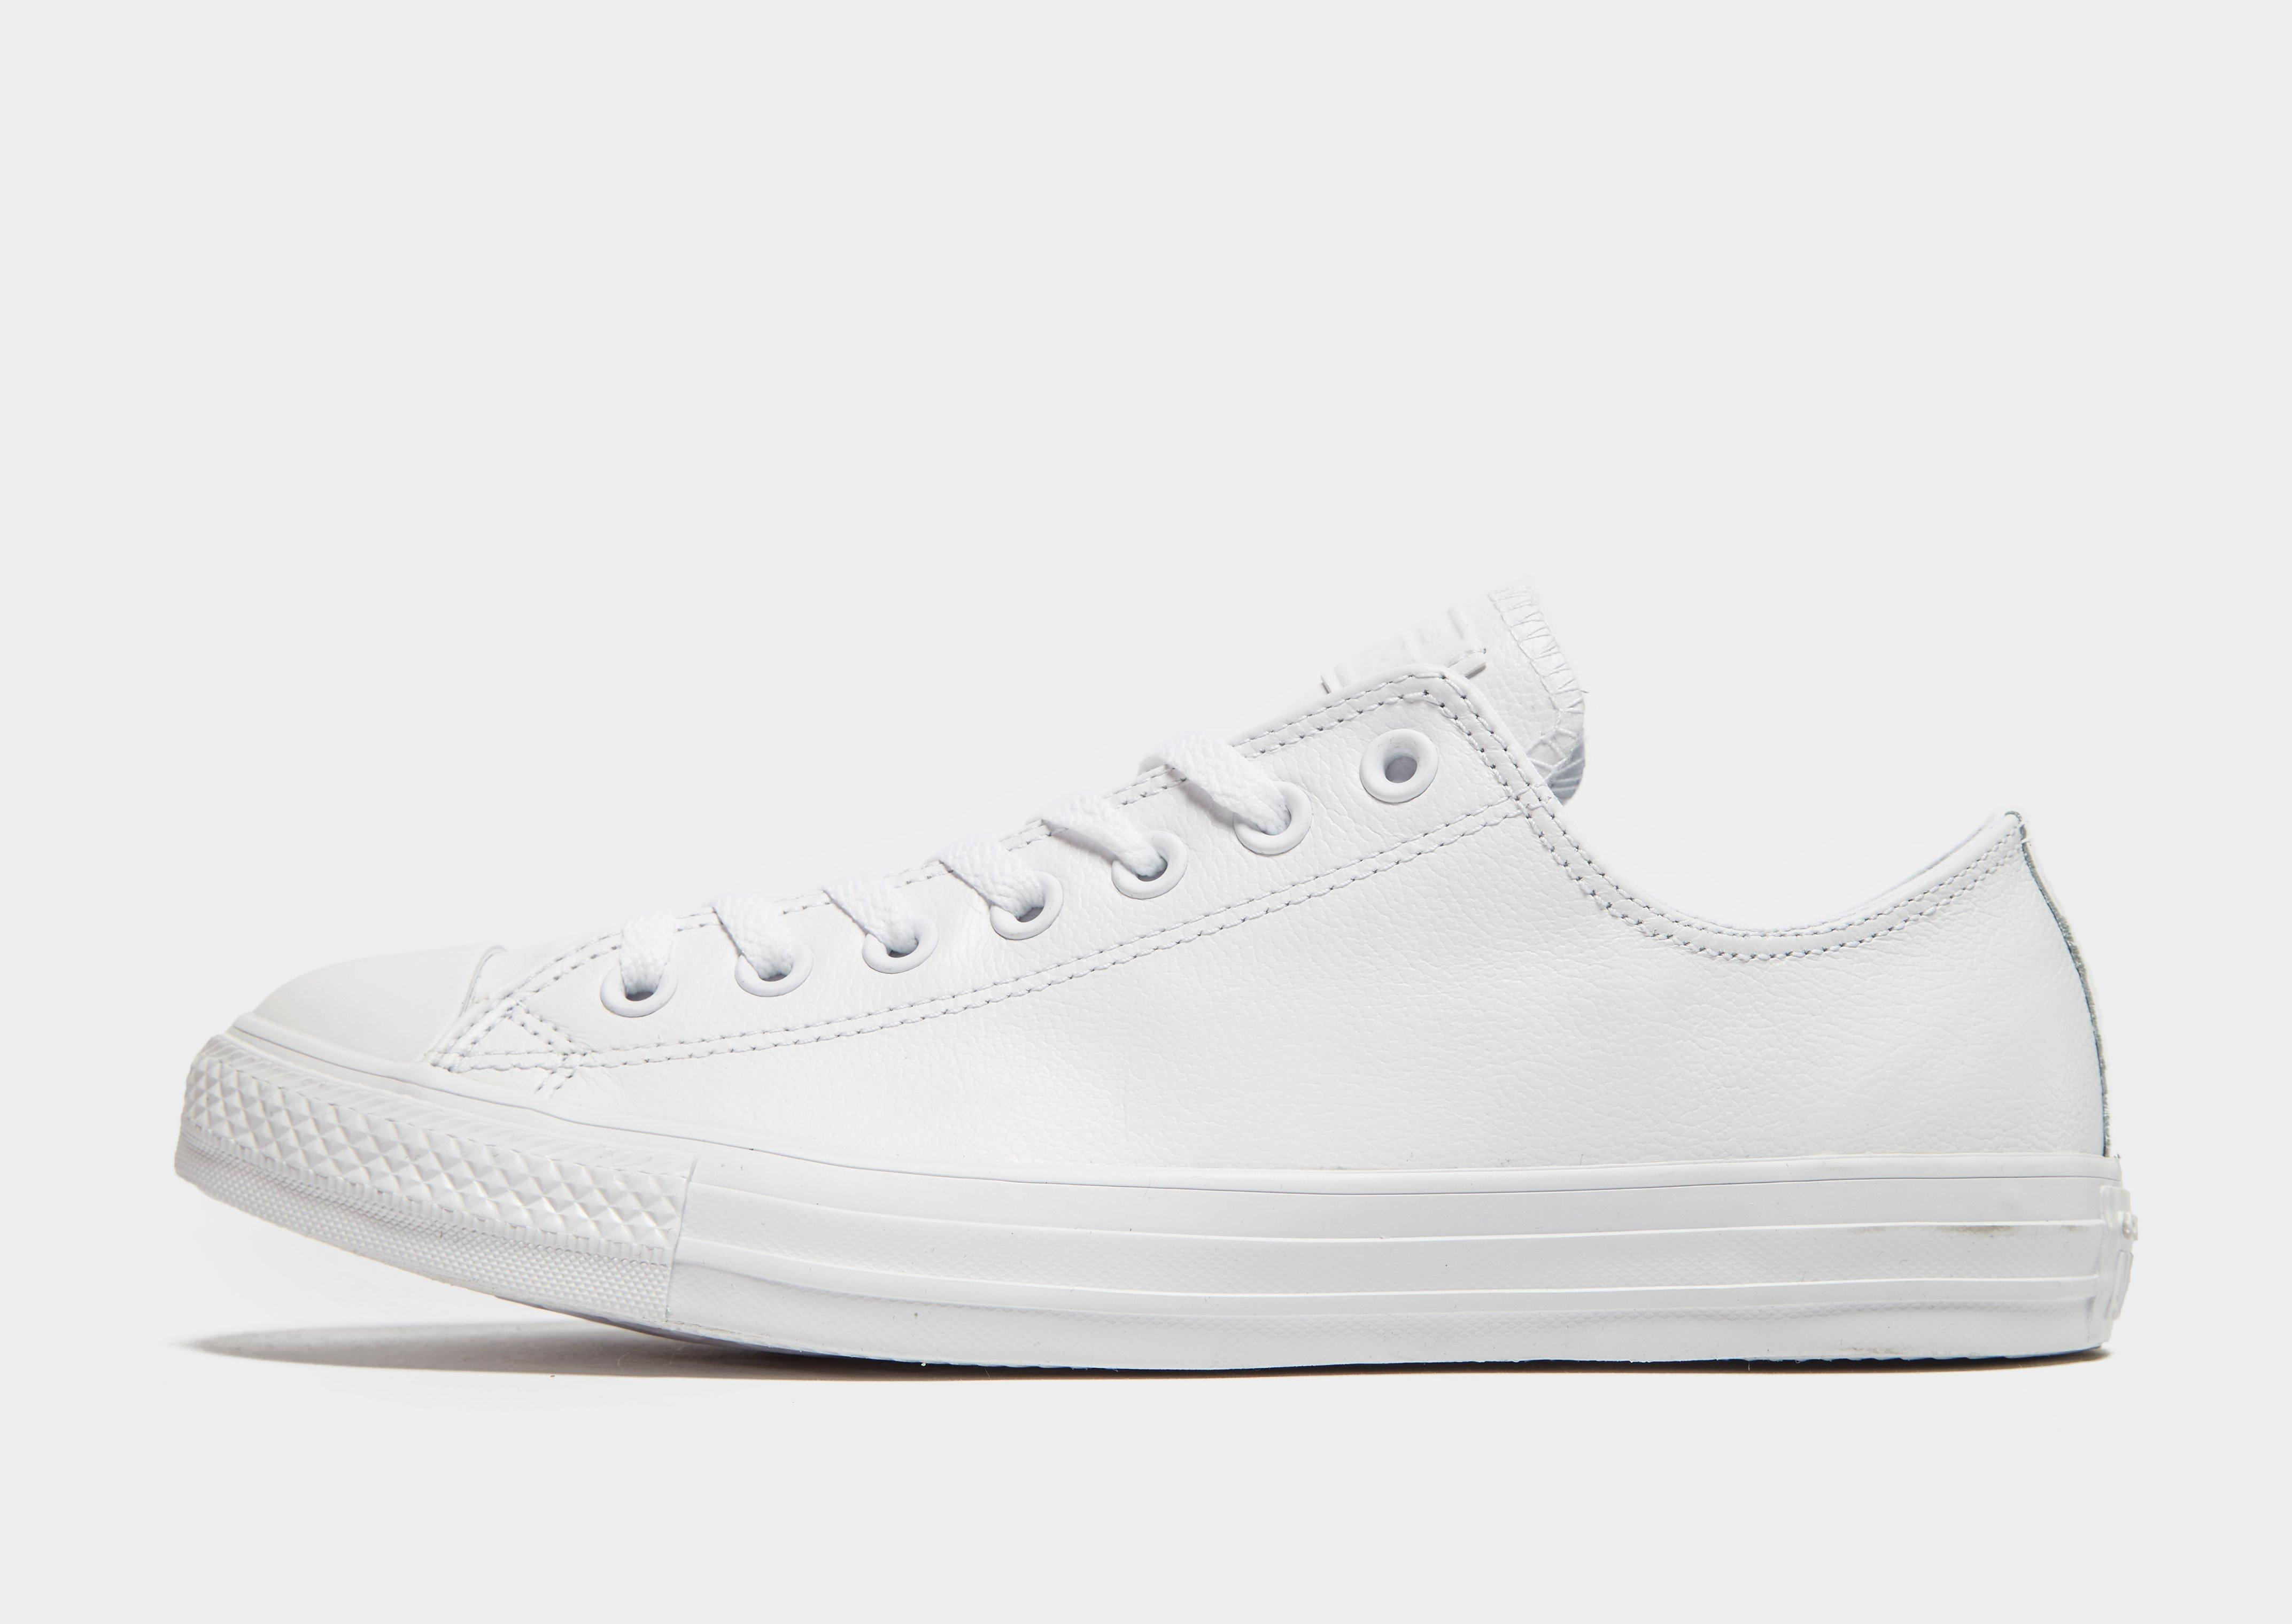 09724e2f9d5d Offers Converse Star Player Ox Trainers White Navy Mens Trainers ...